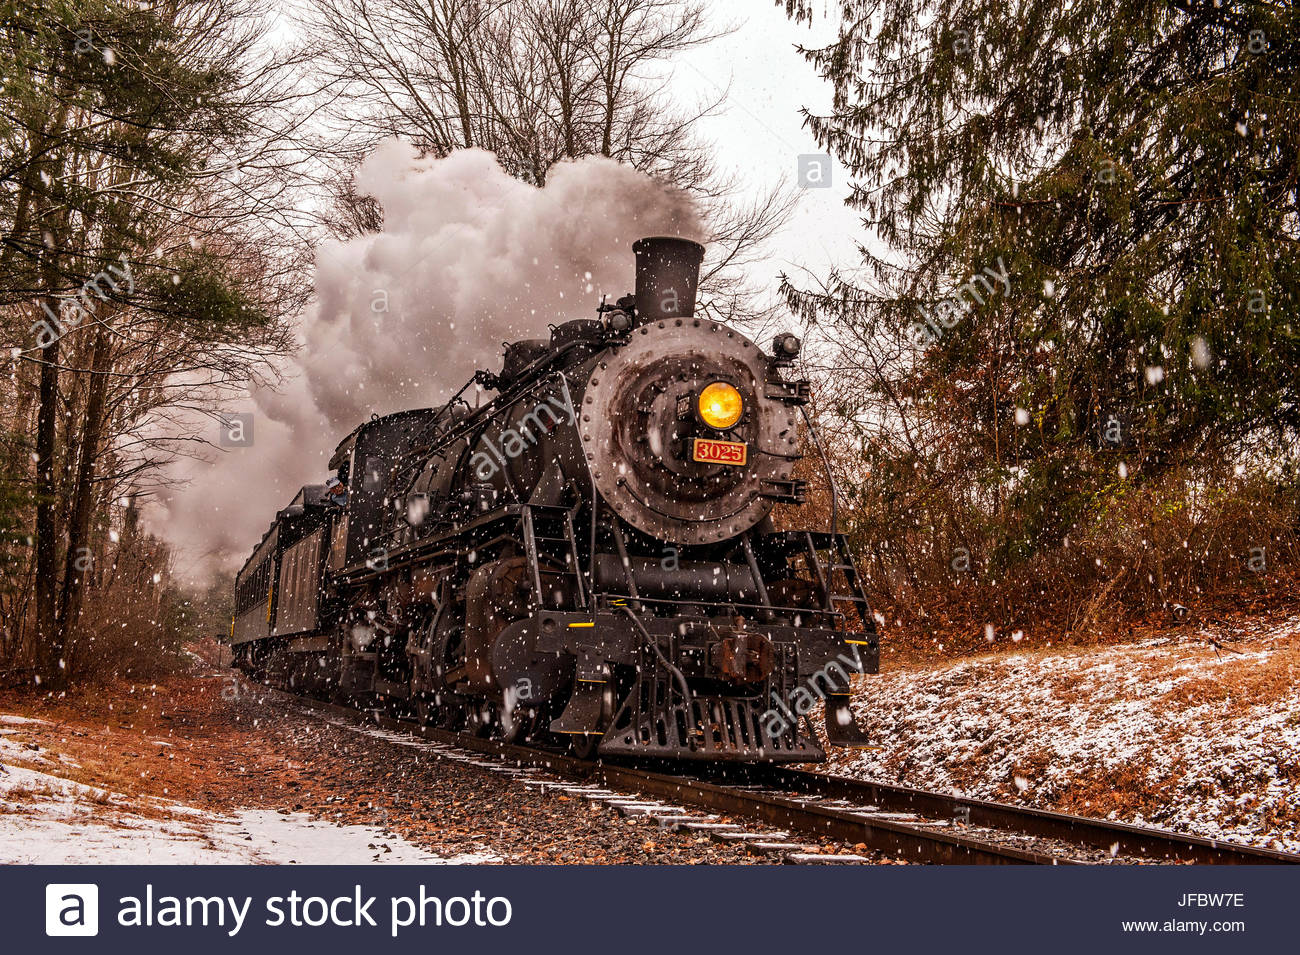 Scenic view of the Essex steam train passing through forests in a snow shower. Stock Photo